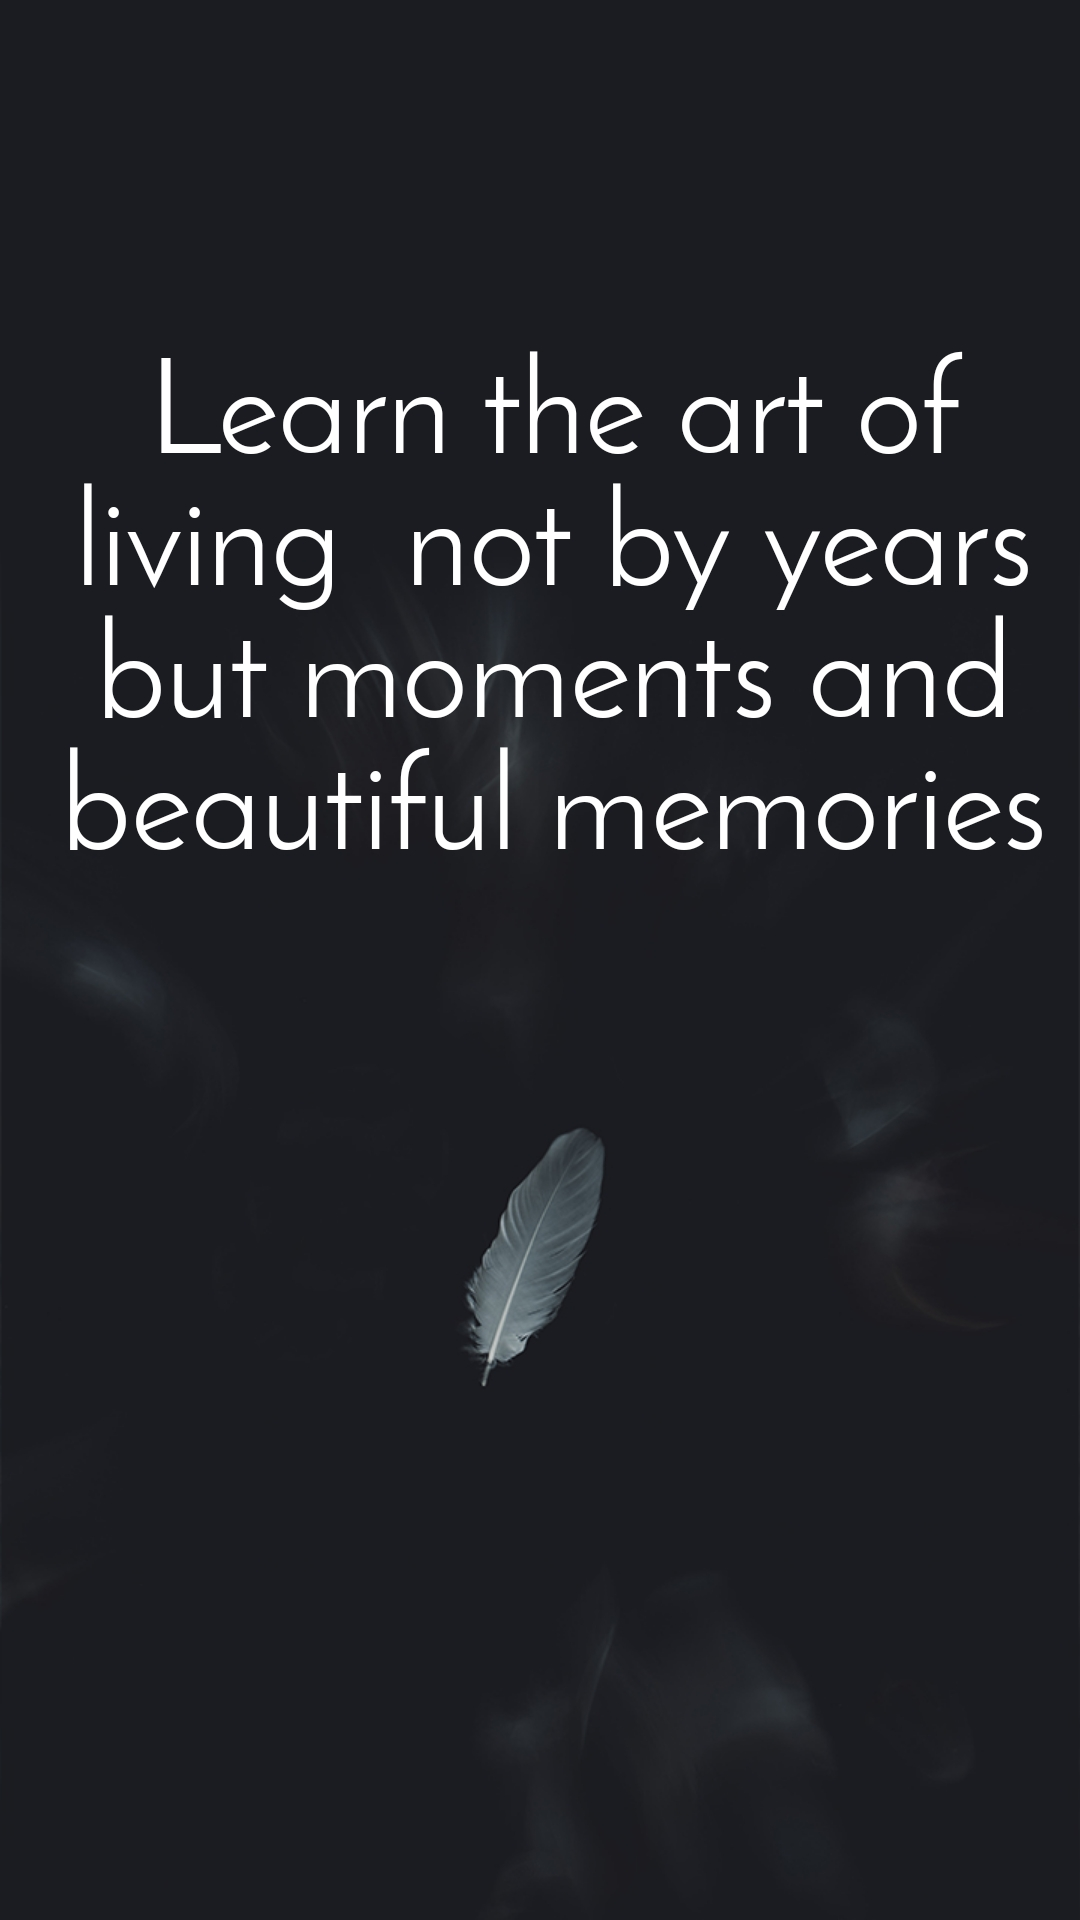 Learn the art of living  not by years but moments and beautiful memories